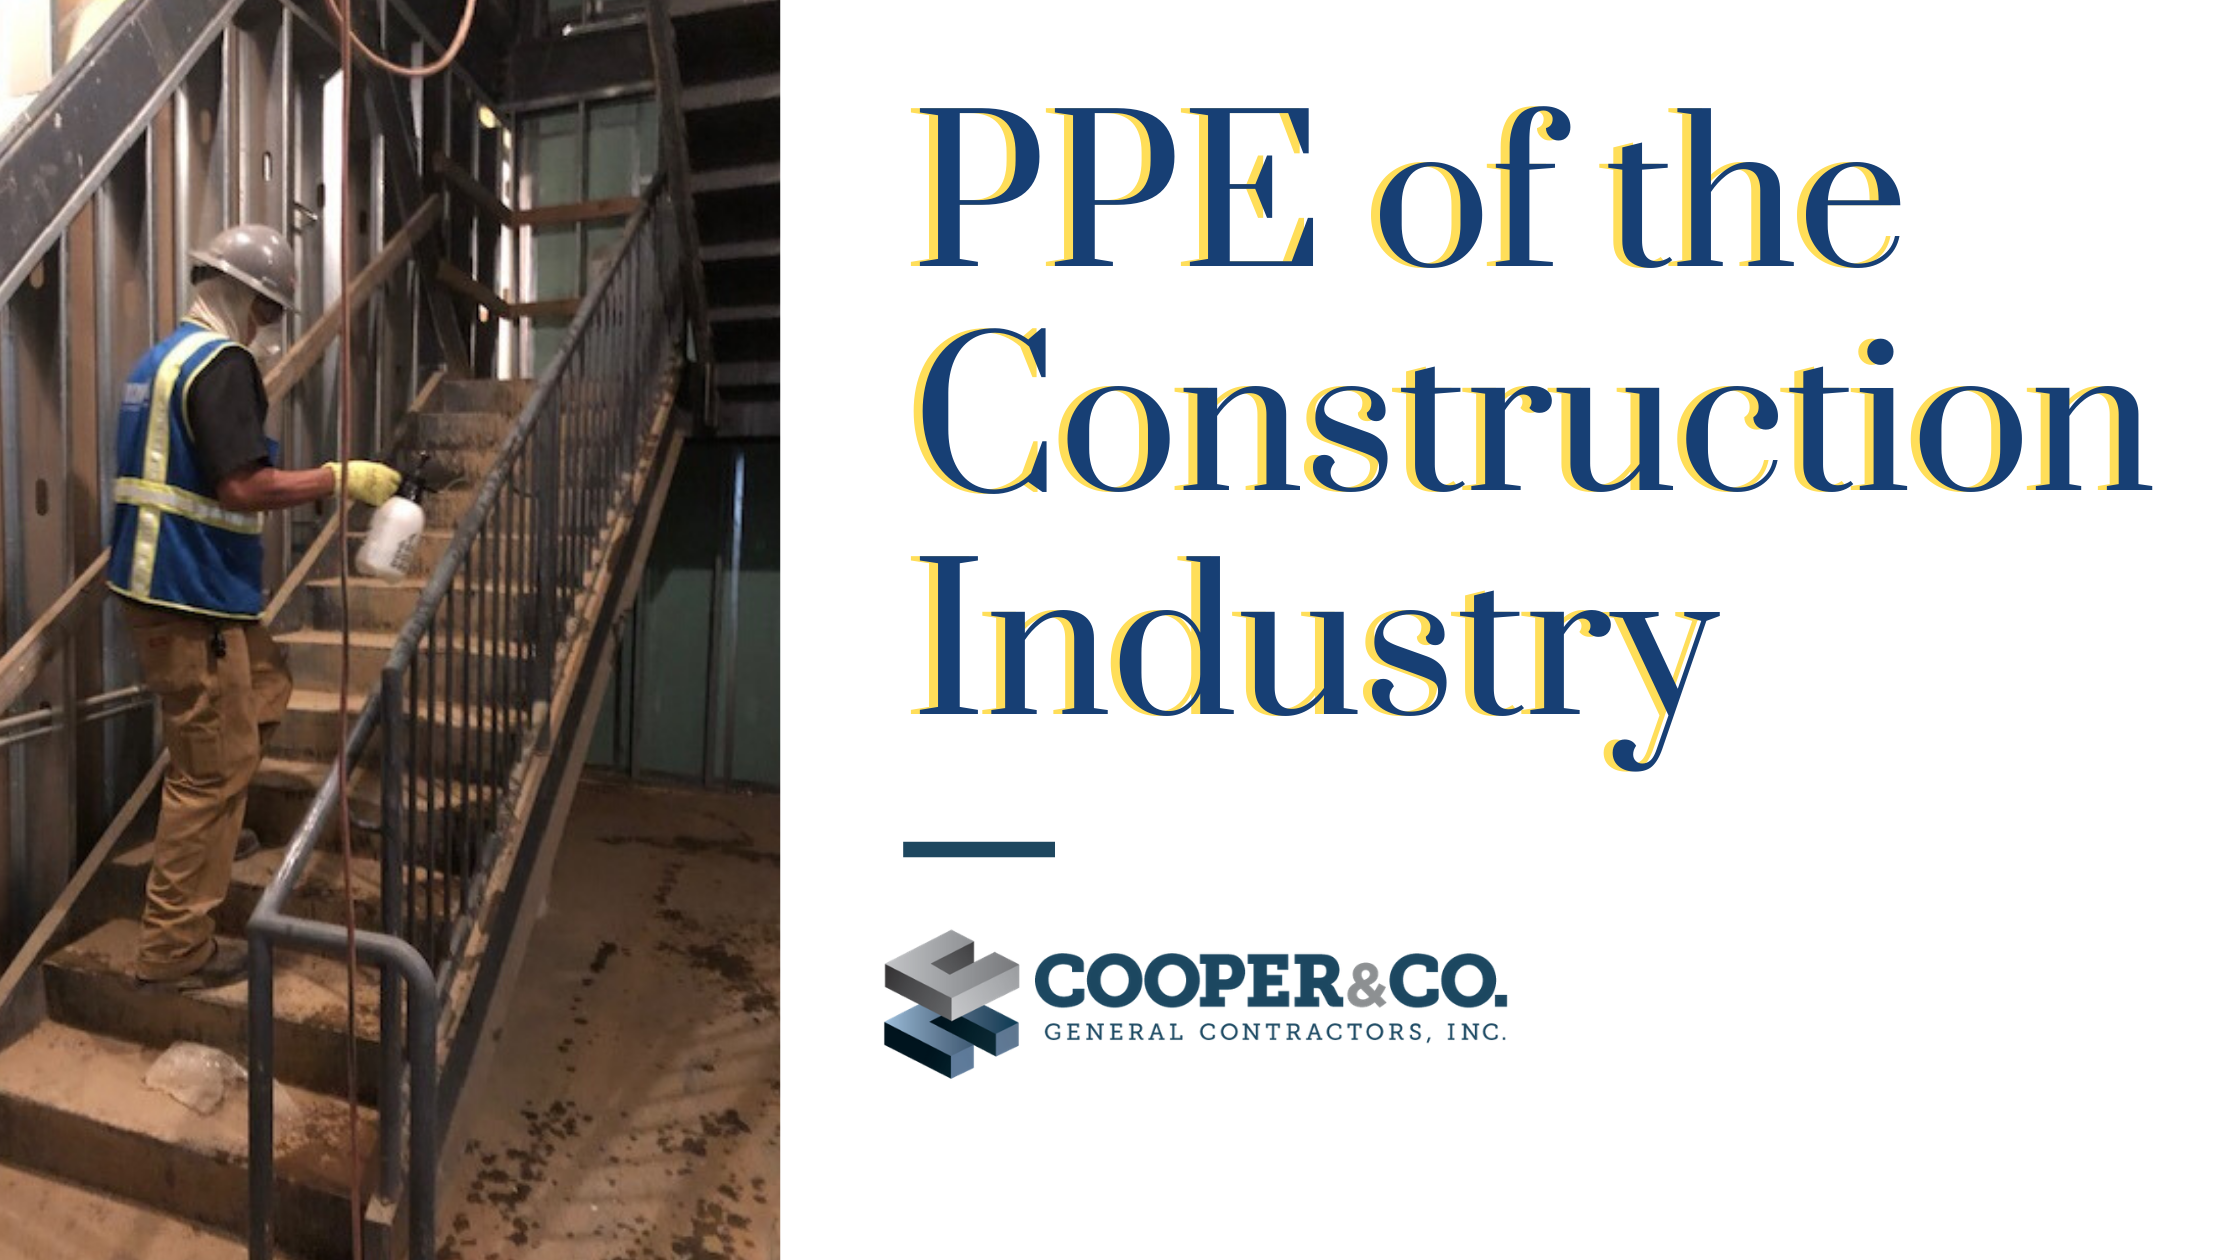 Cooper & Company | PPE of the Construction World